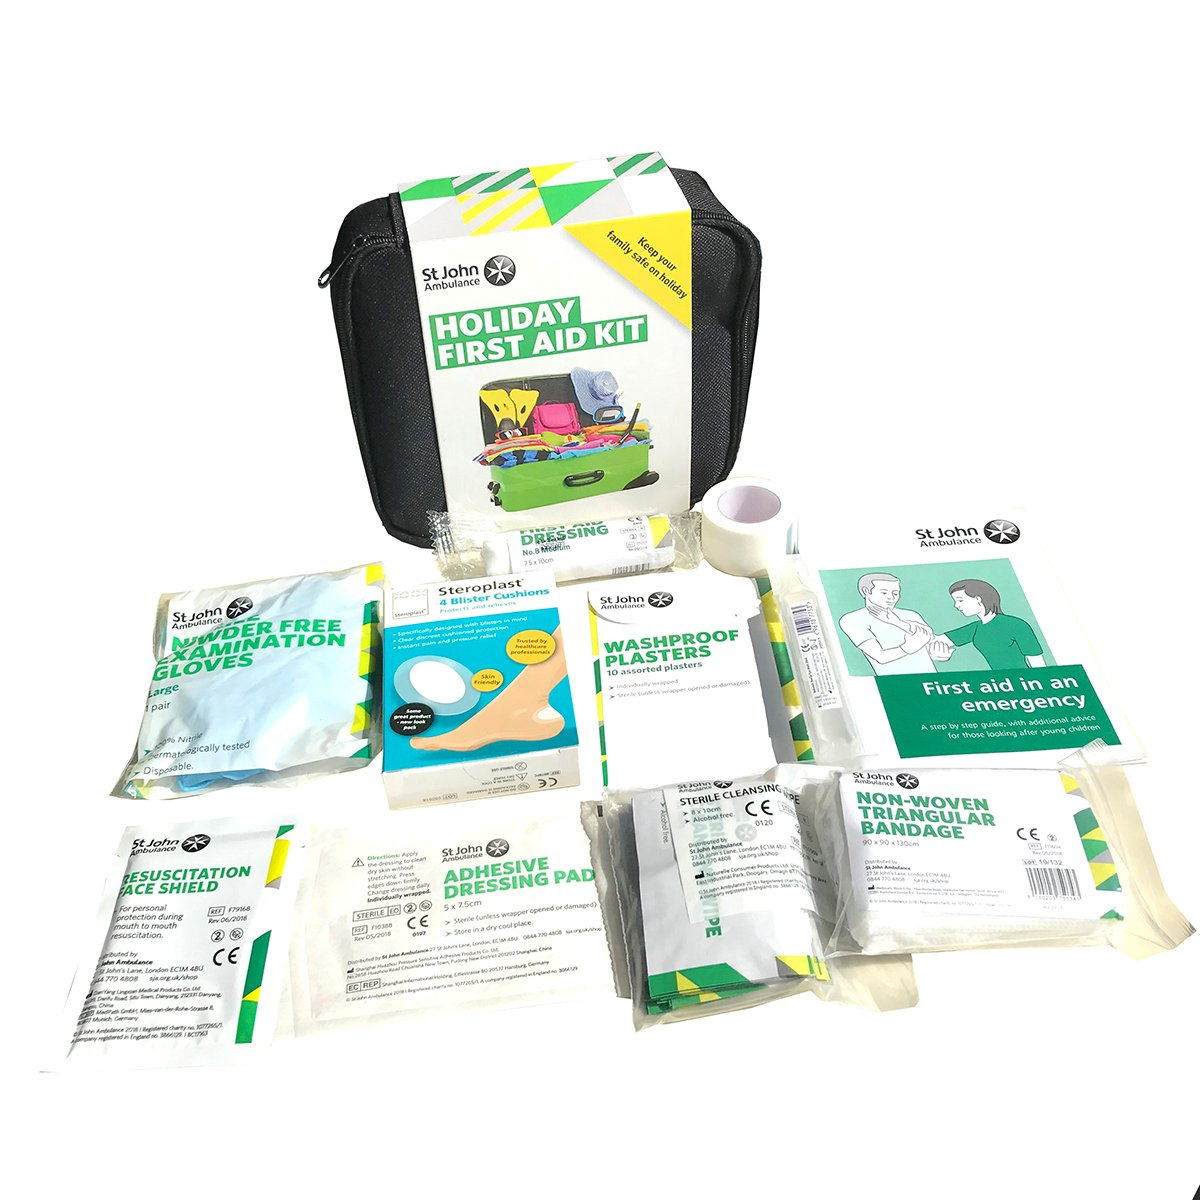 St John Ambulance Holiday First Aid Kit